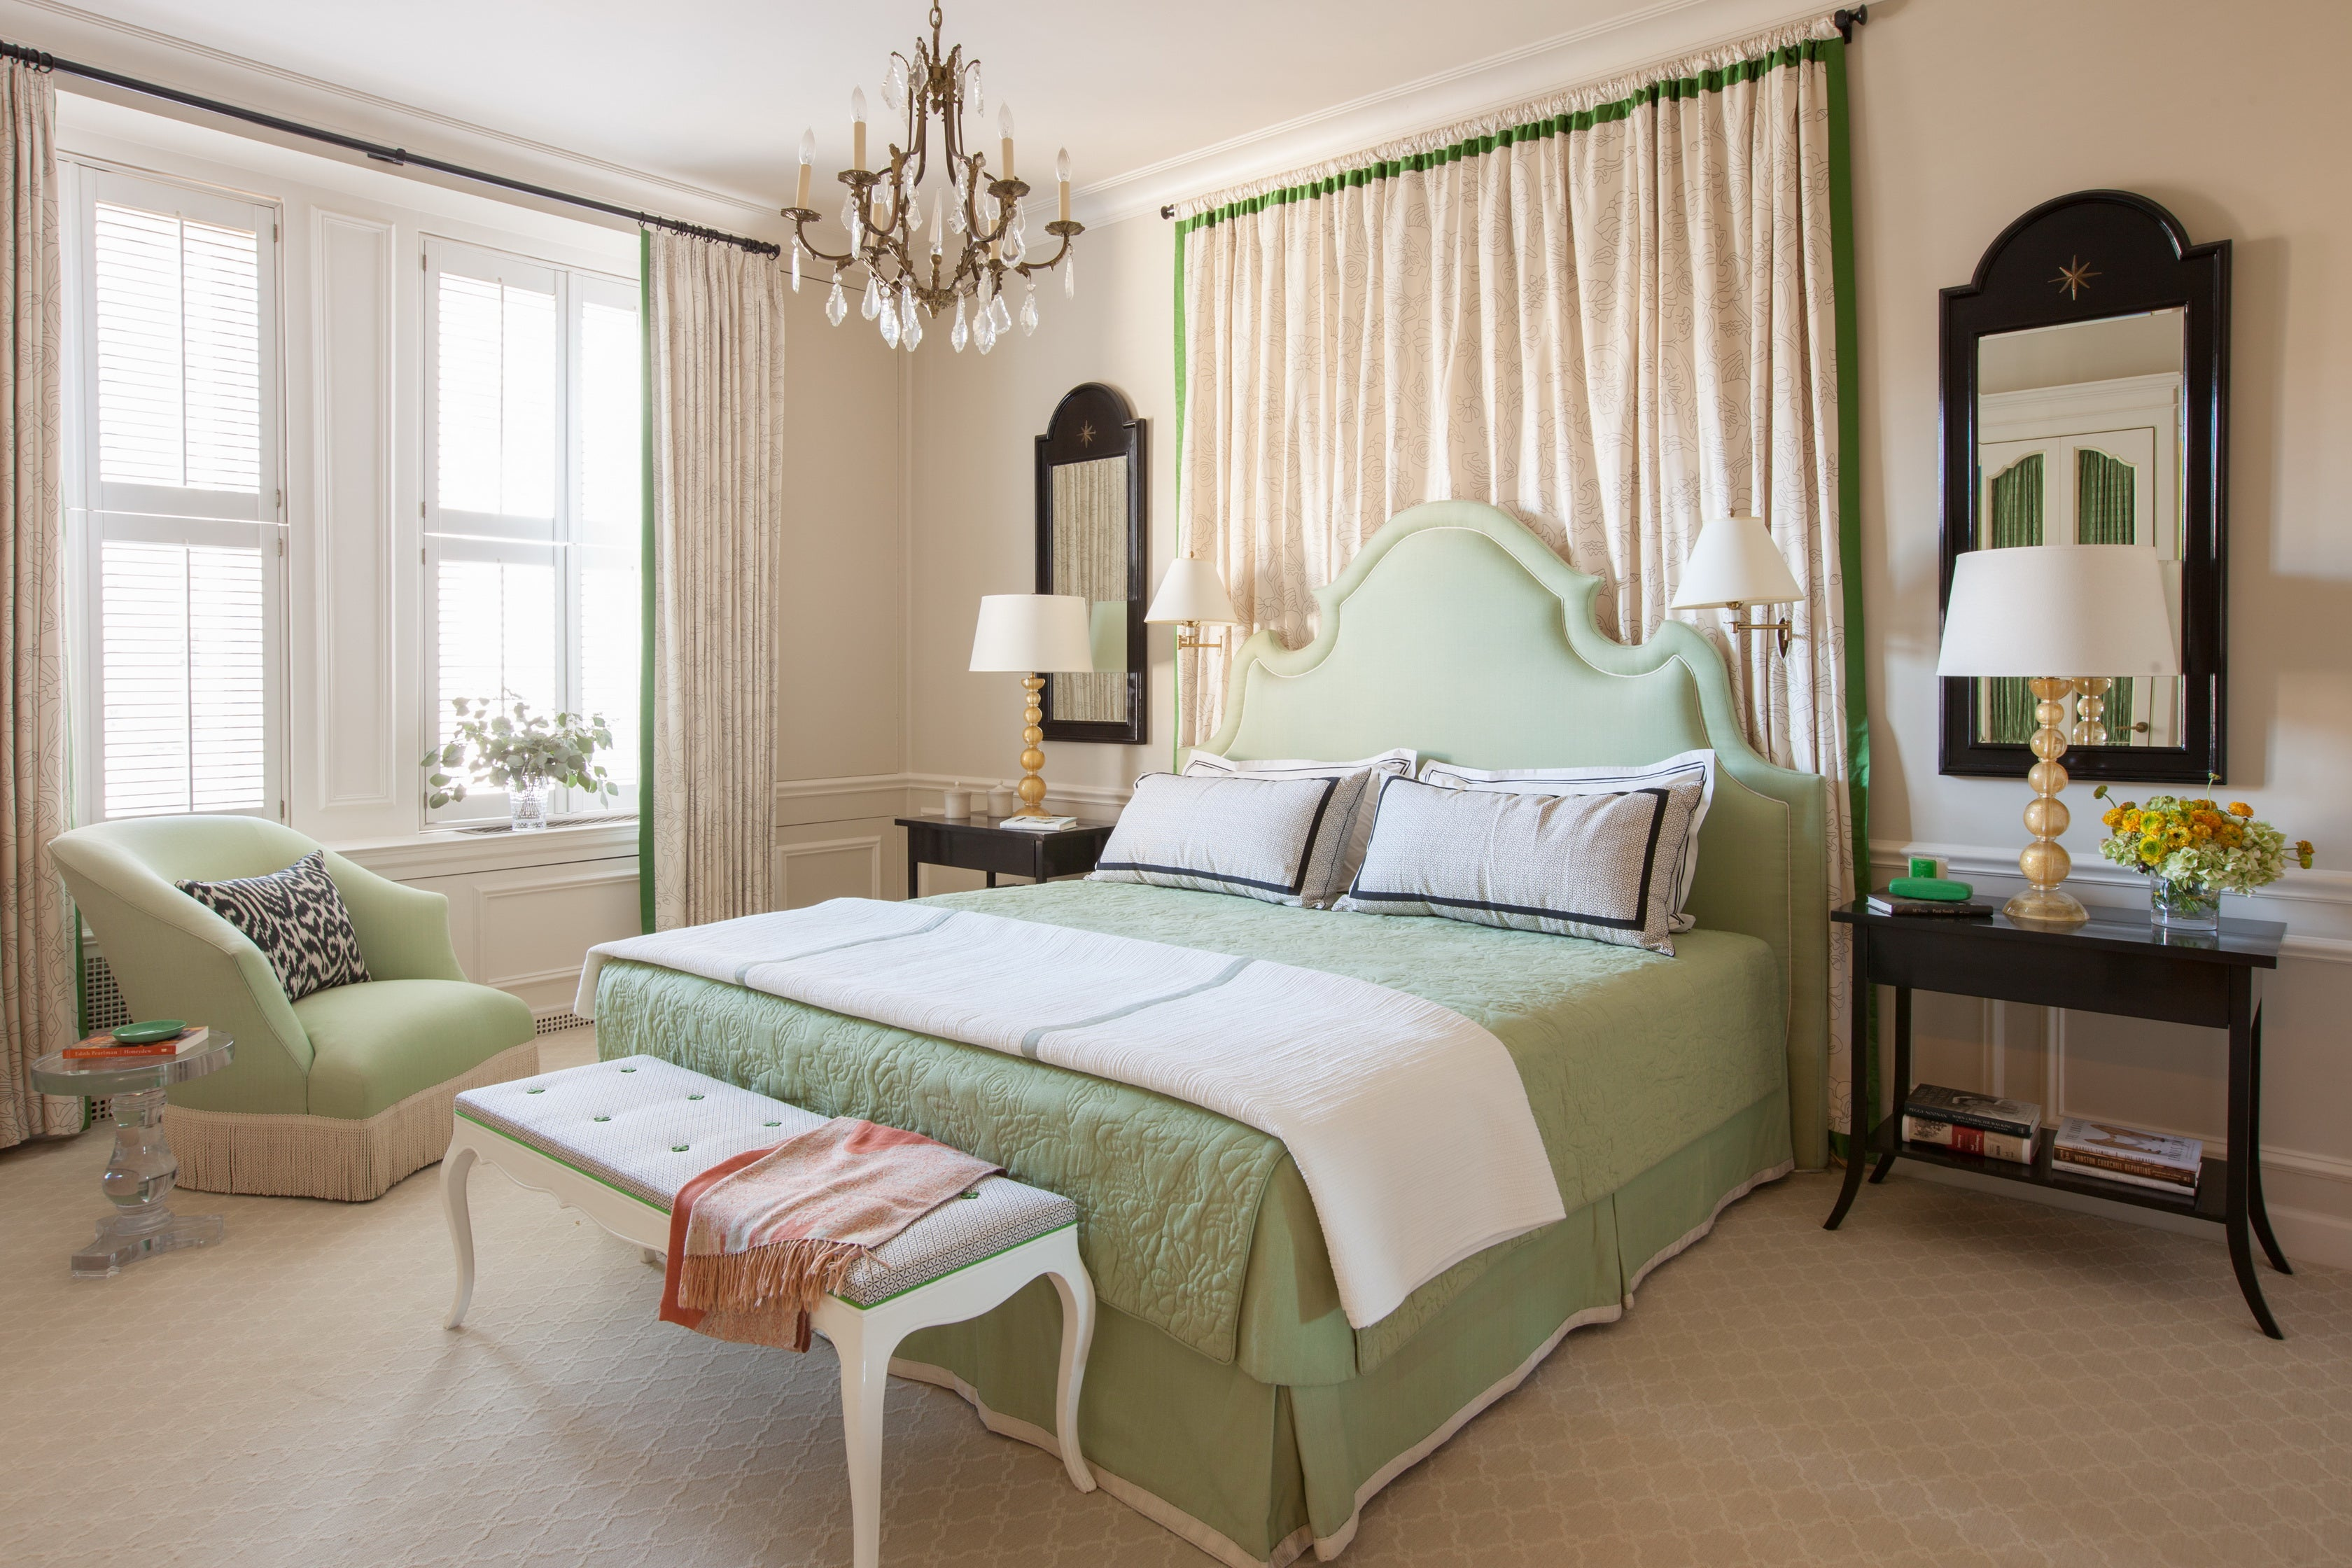 Hollywood Regency Bedroom In US By Brockschmidt U0026 Coleman LLC